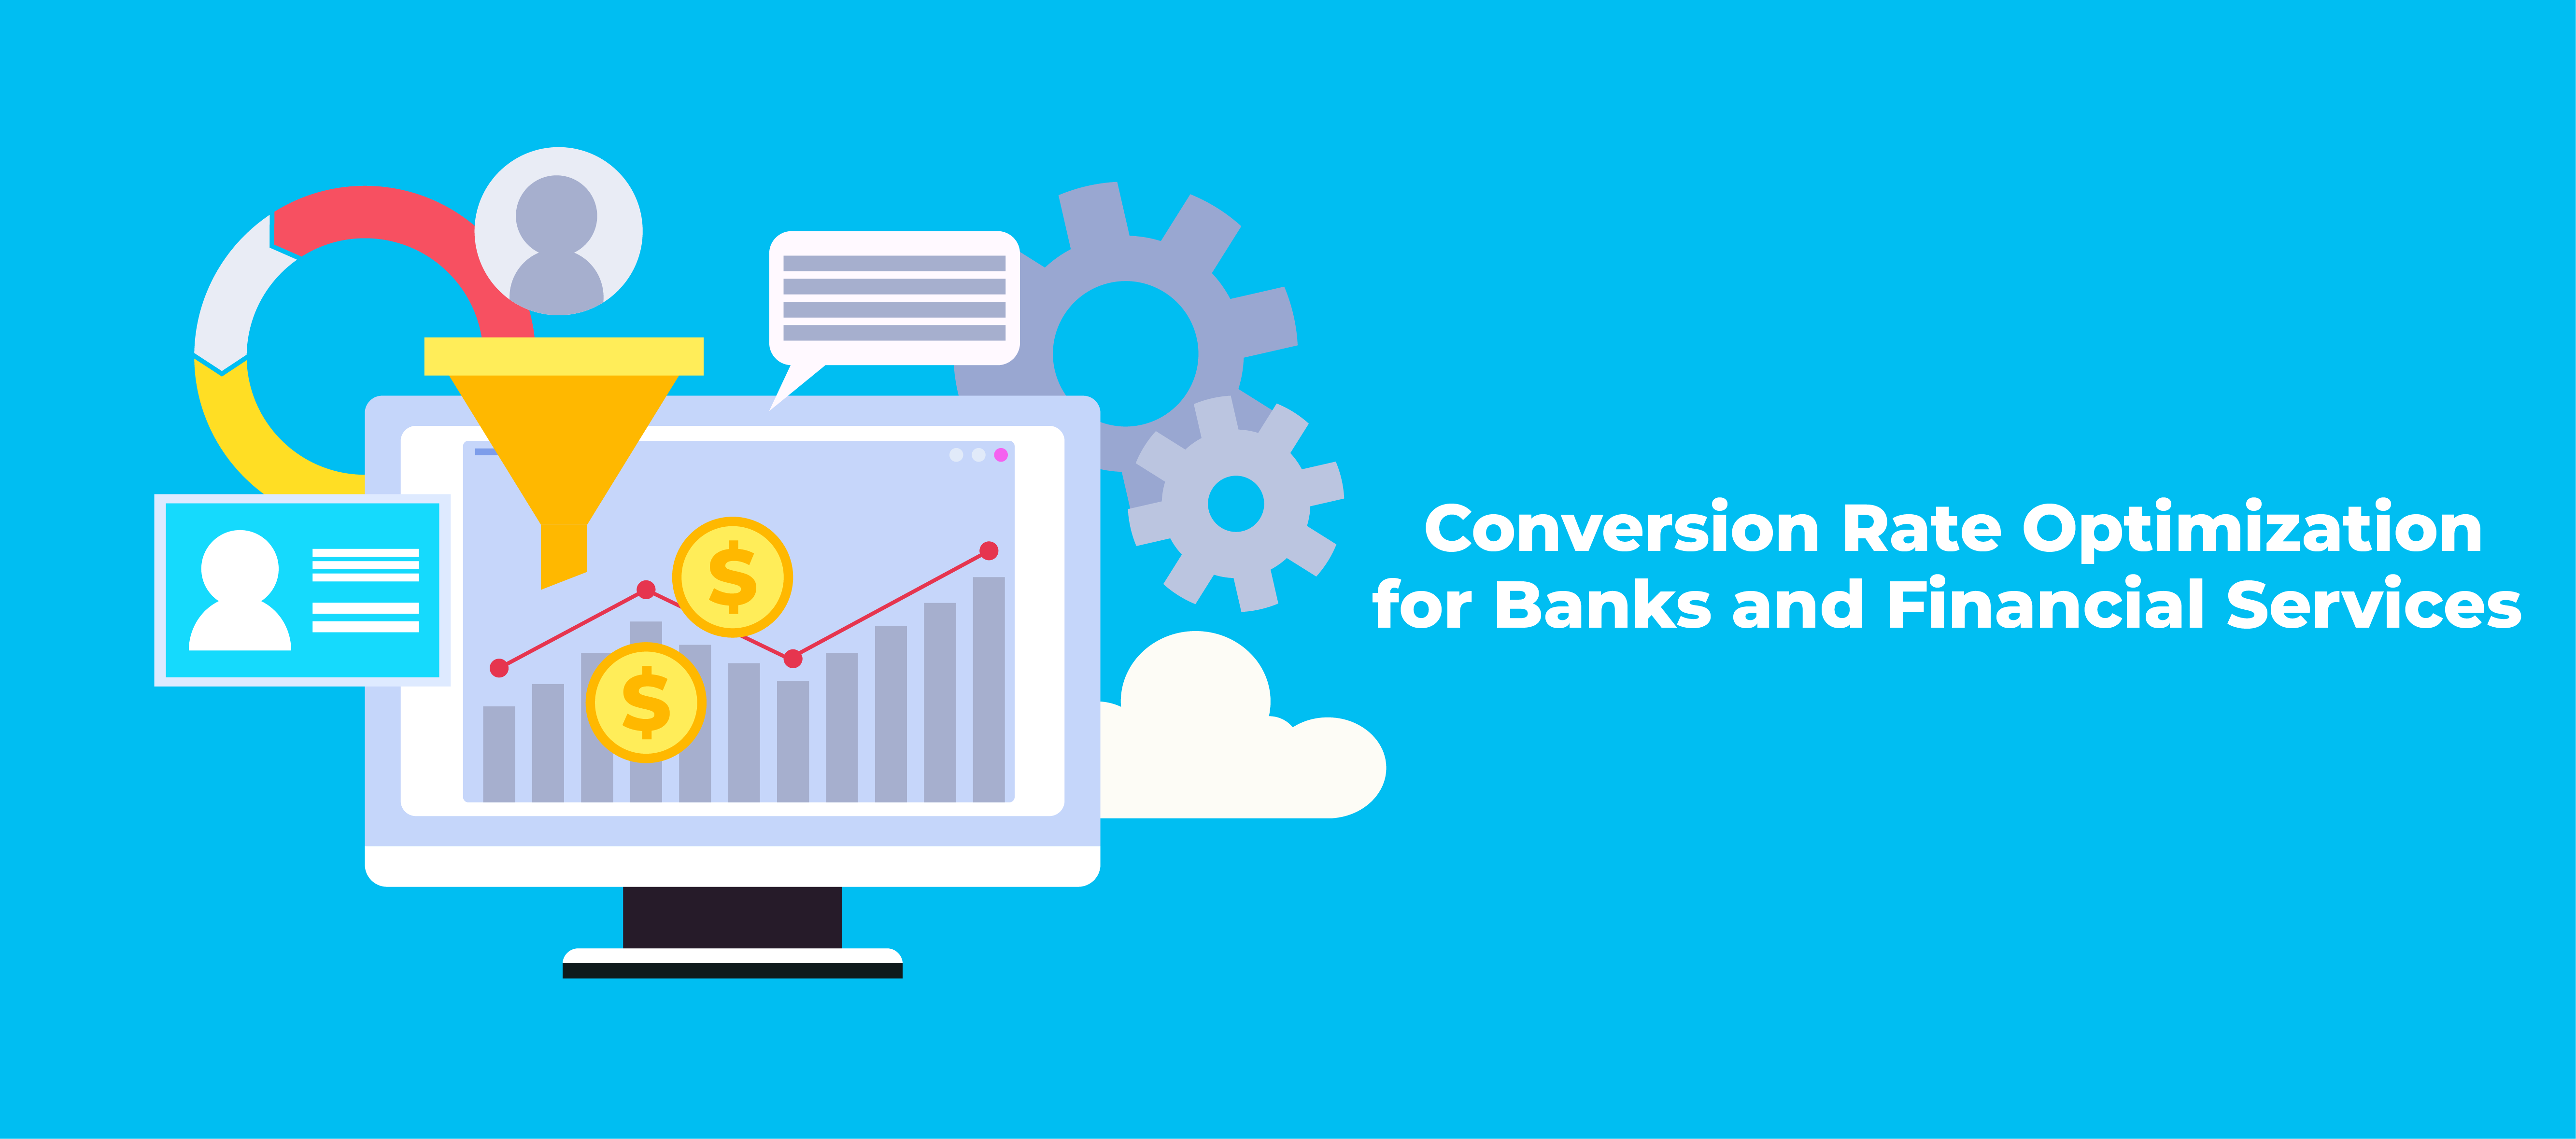 Conversion Rate Optimization for Banks and Financial Services